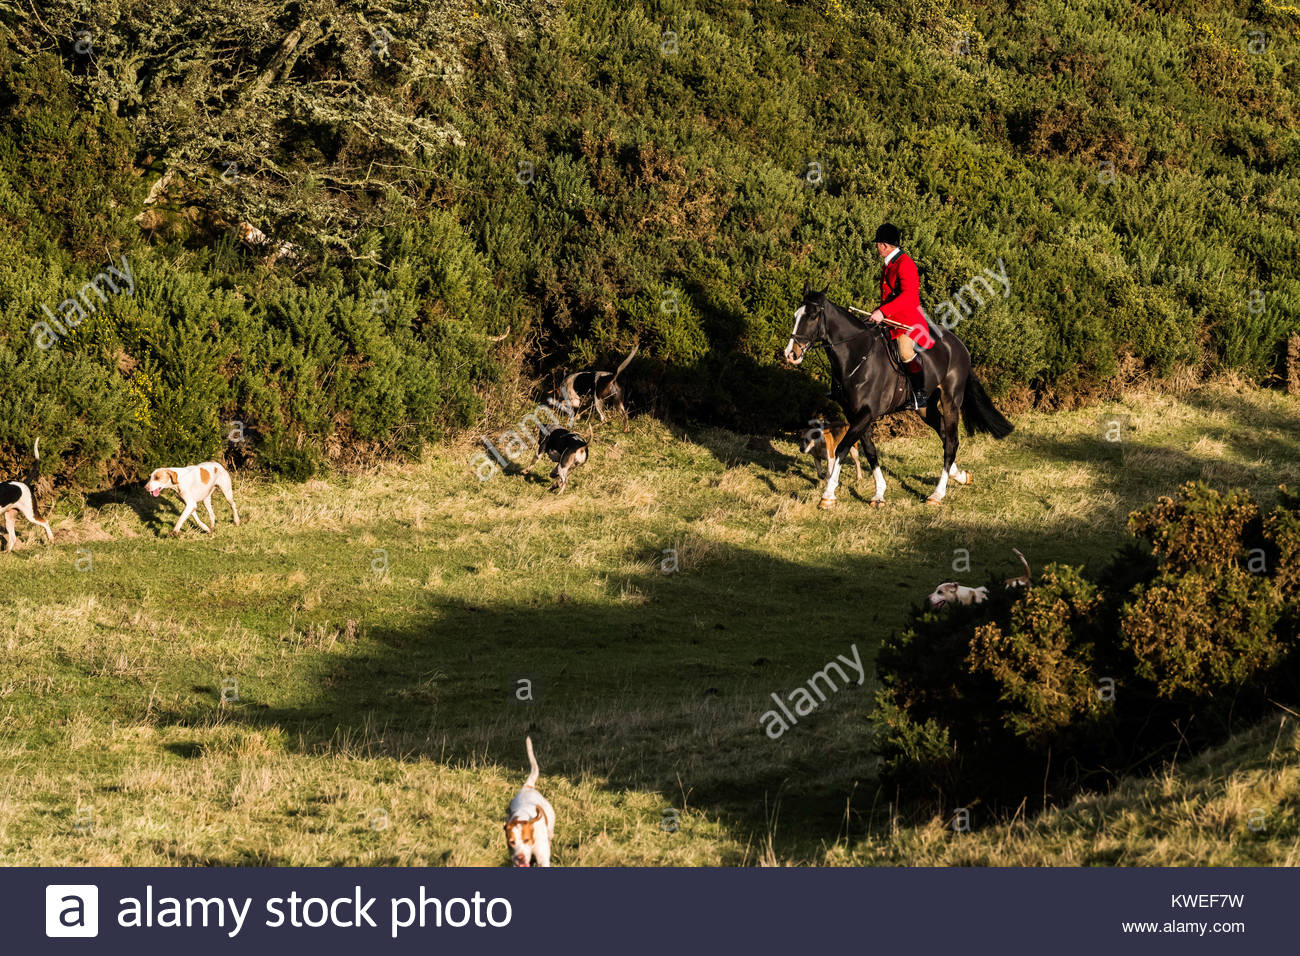 Tim Allen, huntsman of the Duke of Buccleuch foxhounds, draws a thick clump of gorse for a fox near Midlem village Stock Photo